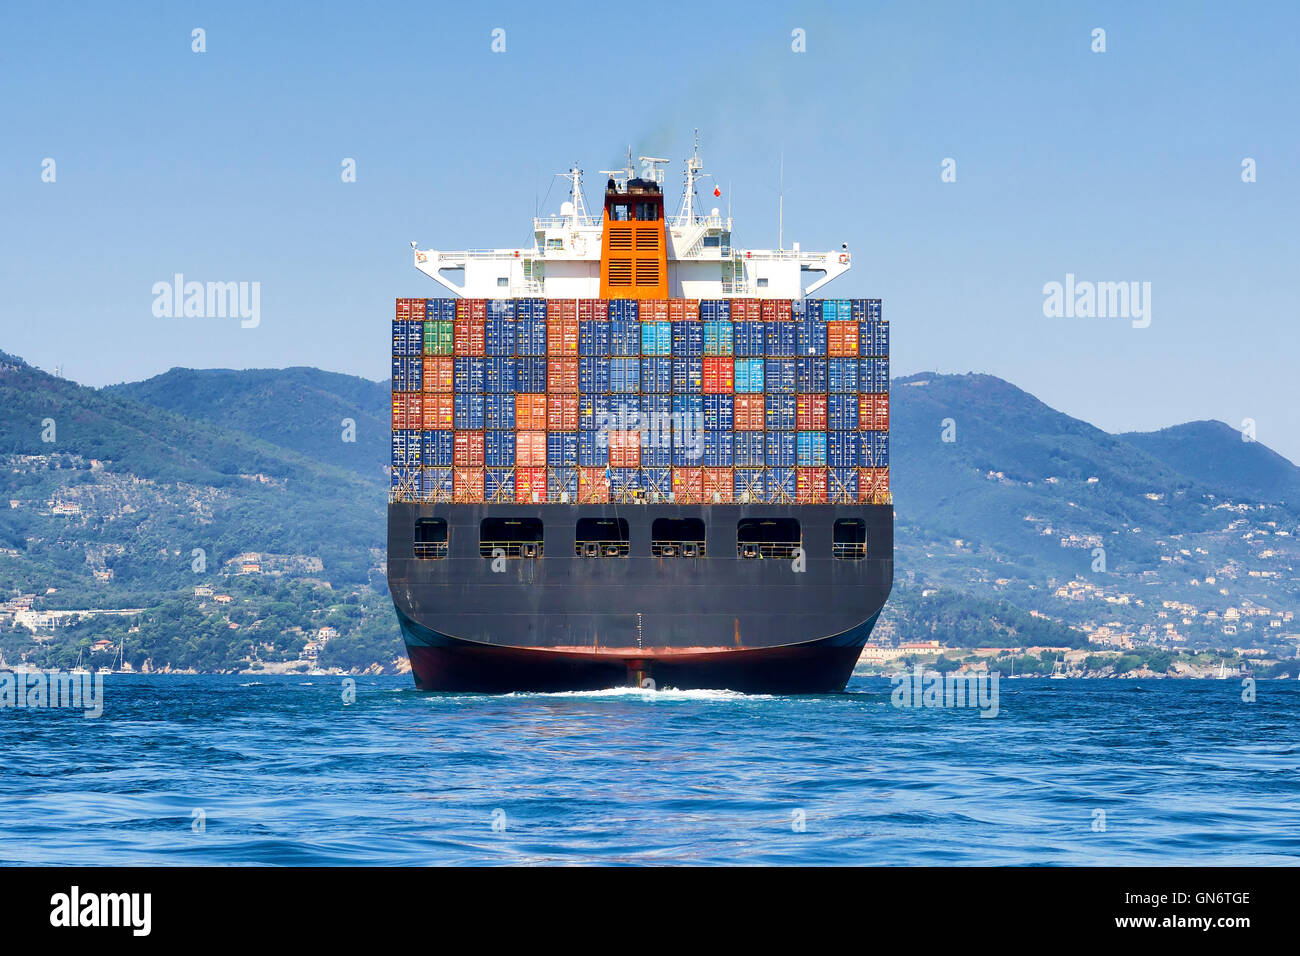 cargo container ship - Stock Image